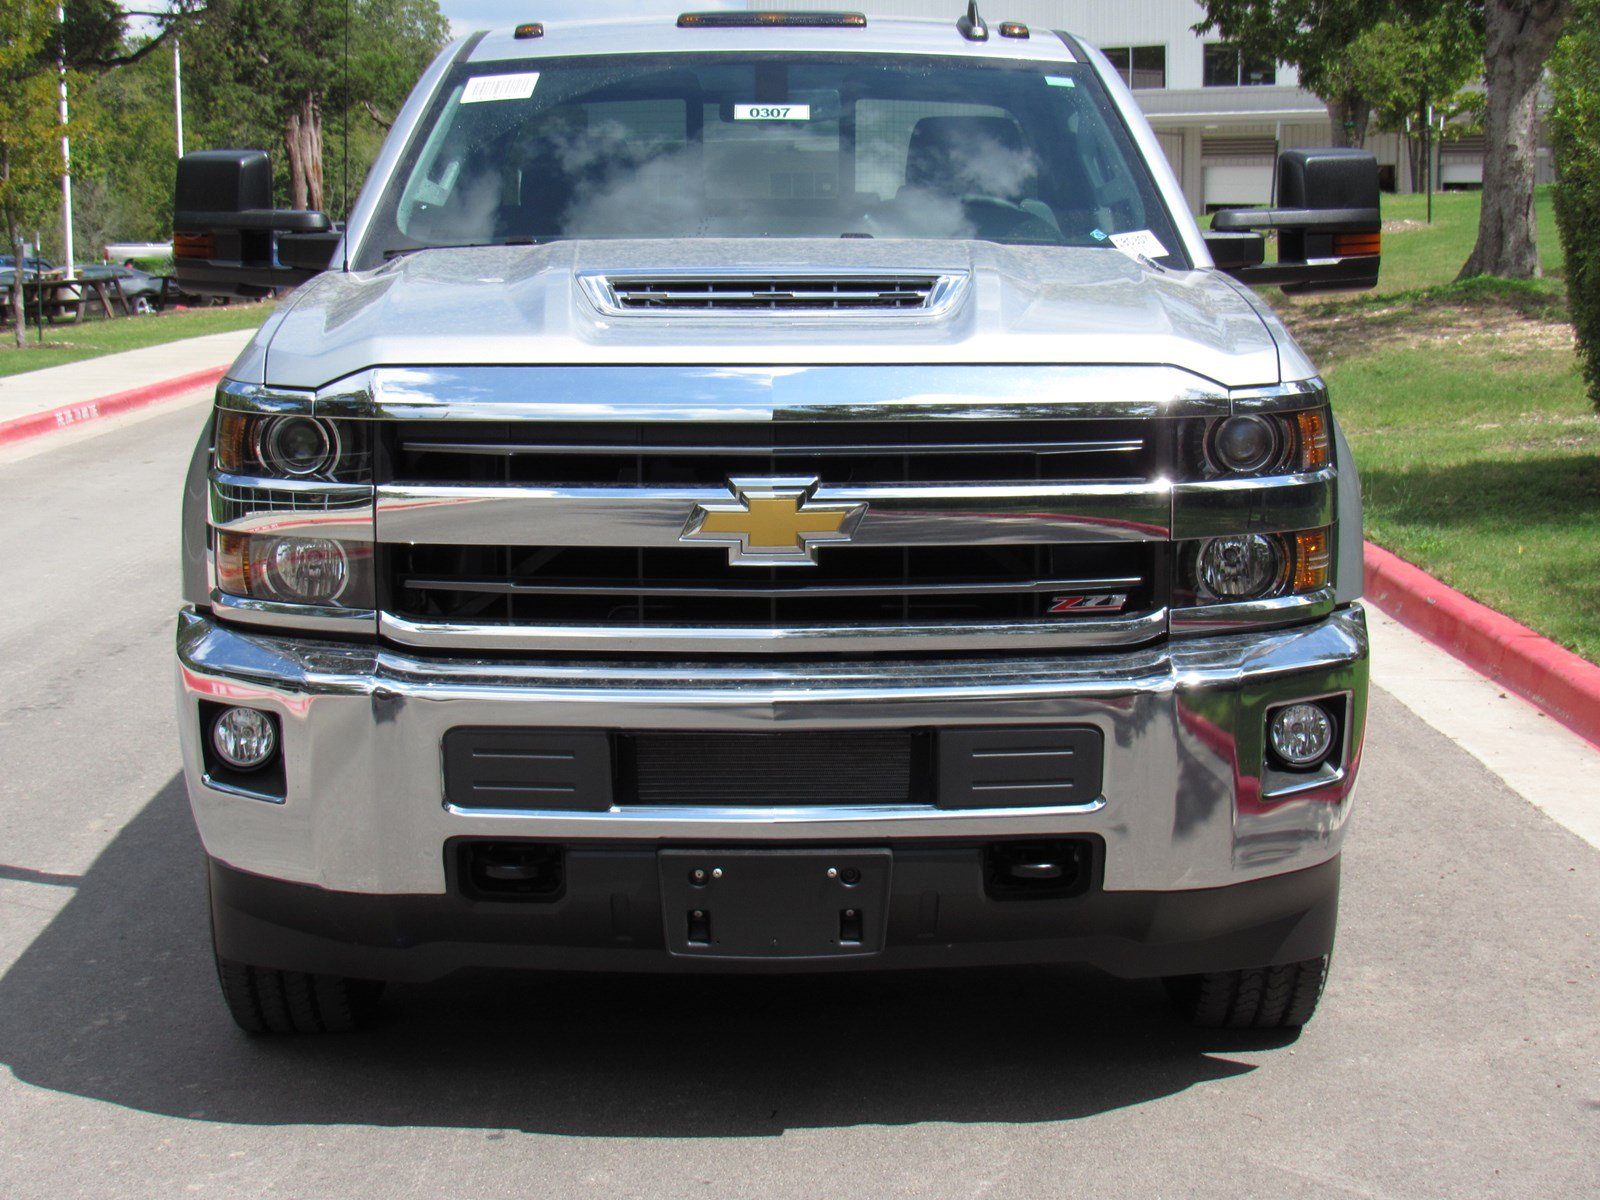 new 2018 chevrolet silverado 2500hd lt crew cab pickup in austin 180307 capitol chevrolet. Black Bedroom Furniture Sets. Home Design Ideas